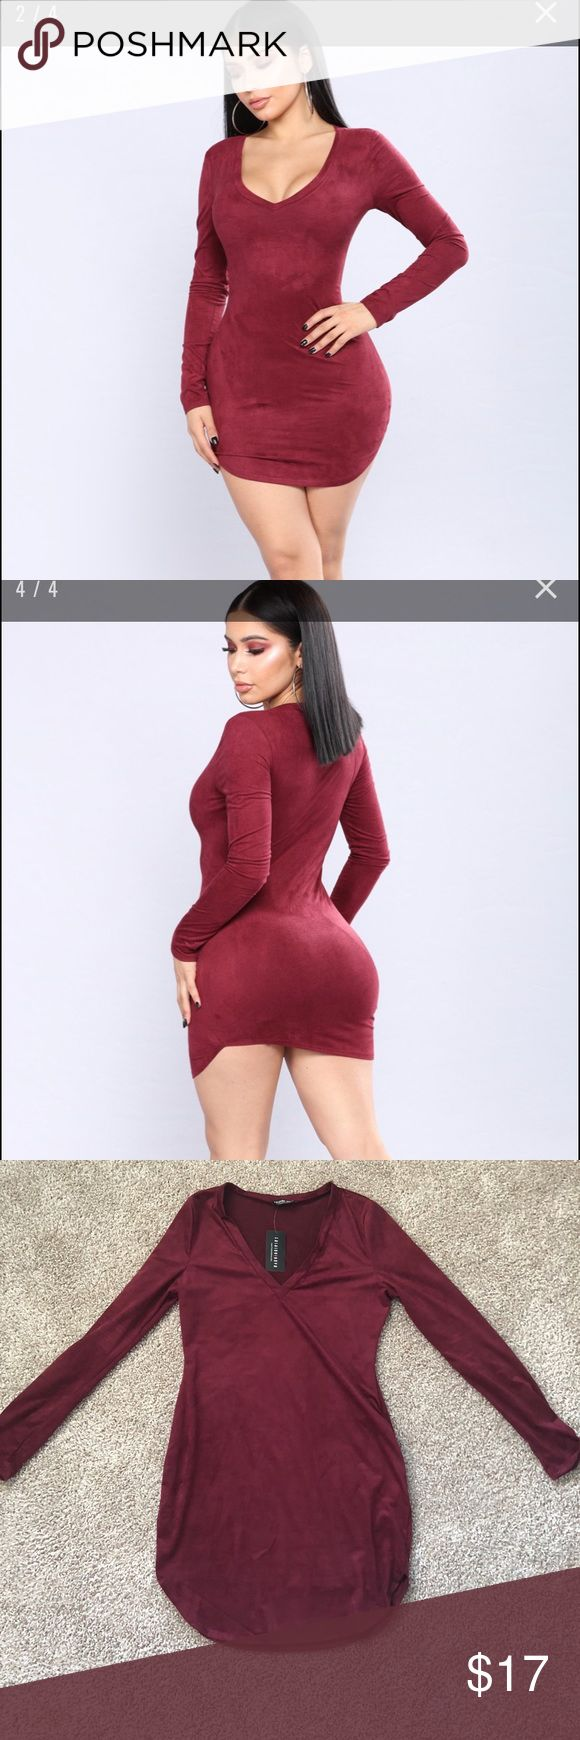 Suede wine colored Dress Sad I didn't fill this dress out enough. This would look awesome on someone with a full butt! It looks super cute with thigh high boots. And it's so soft I could touch it all day long. For size comparison I'm 5'3 and 135 lbs. Fashion Nova Dresses Long Sleeve